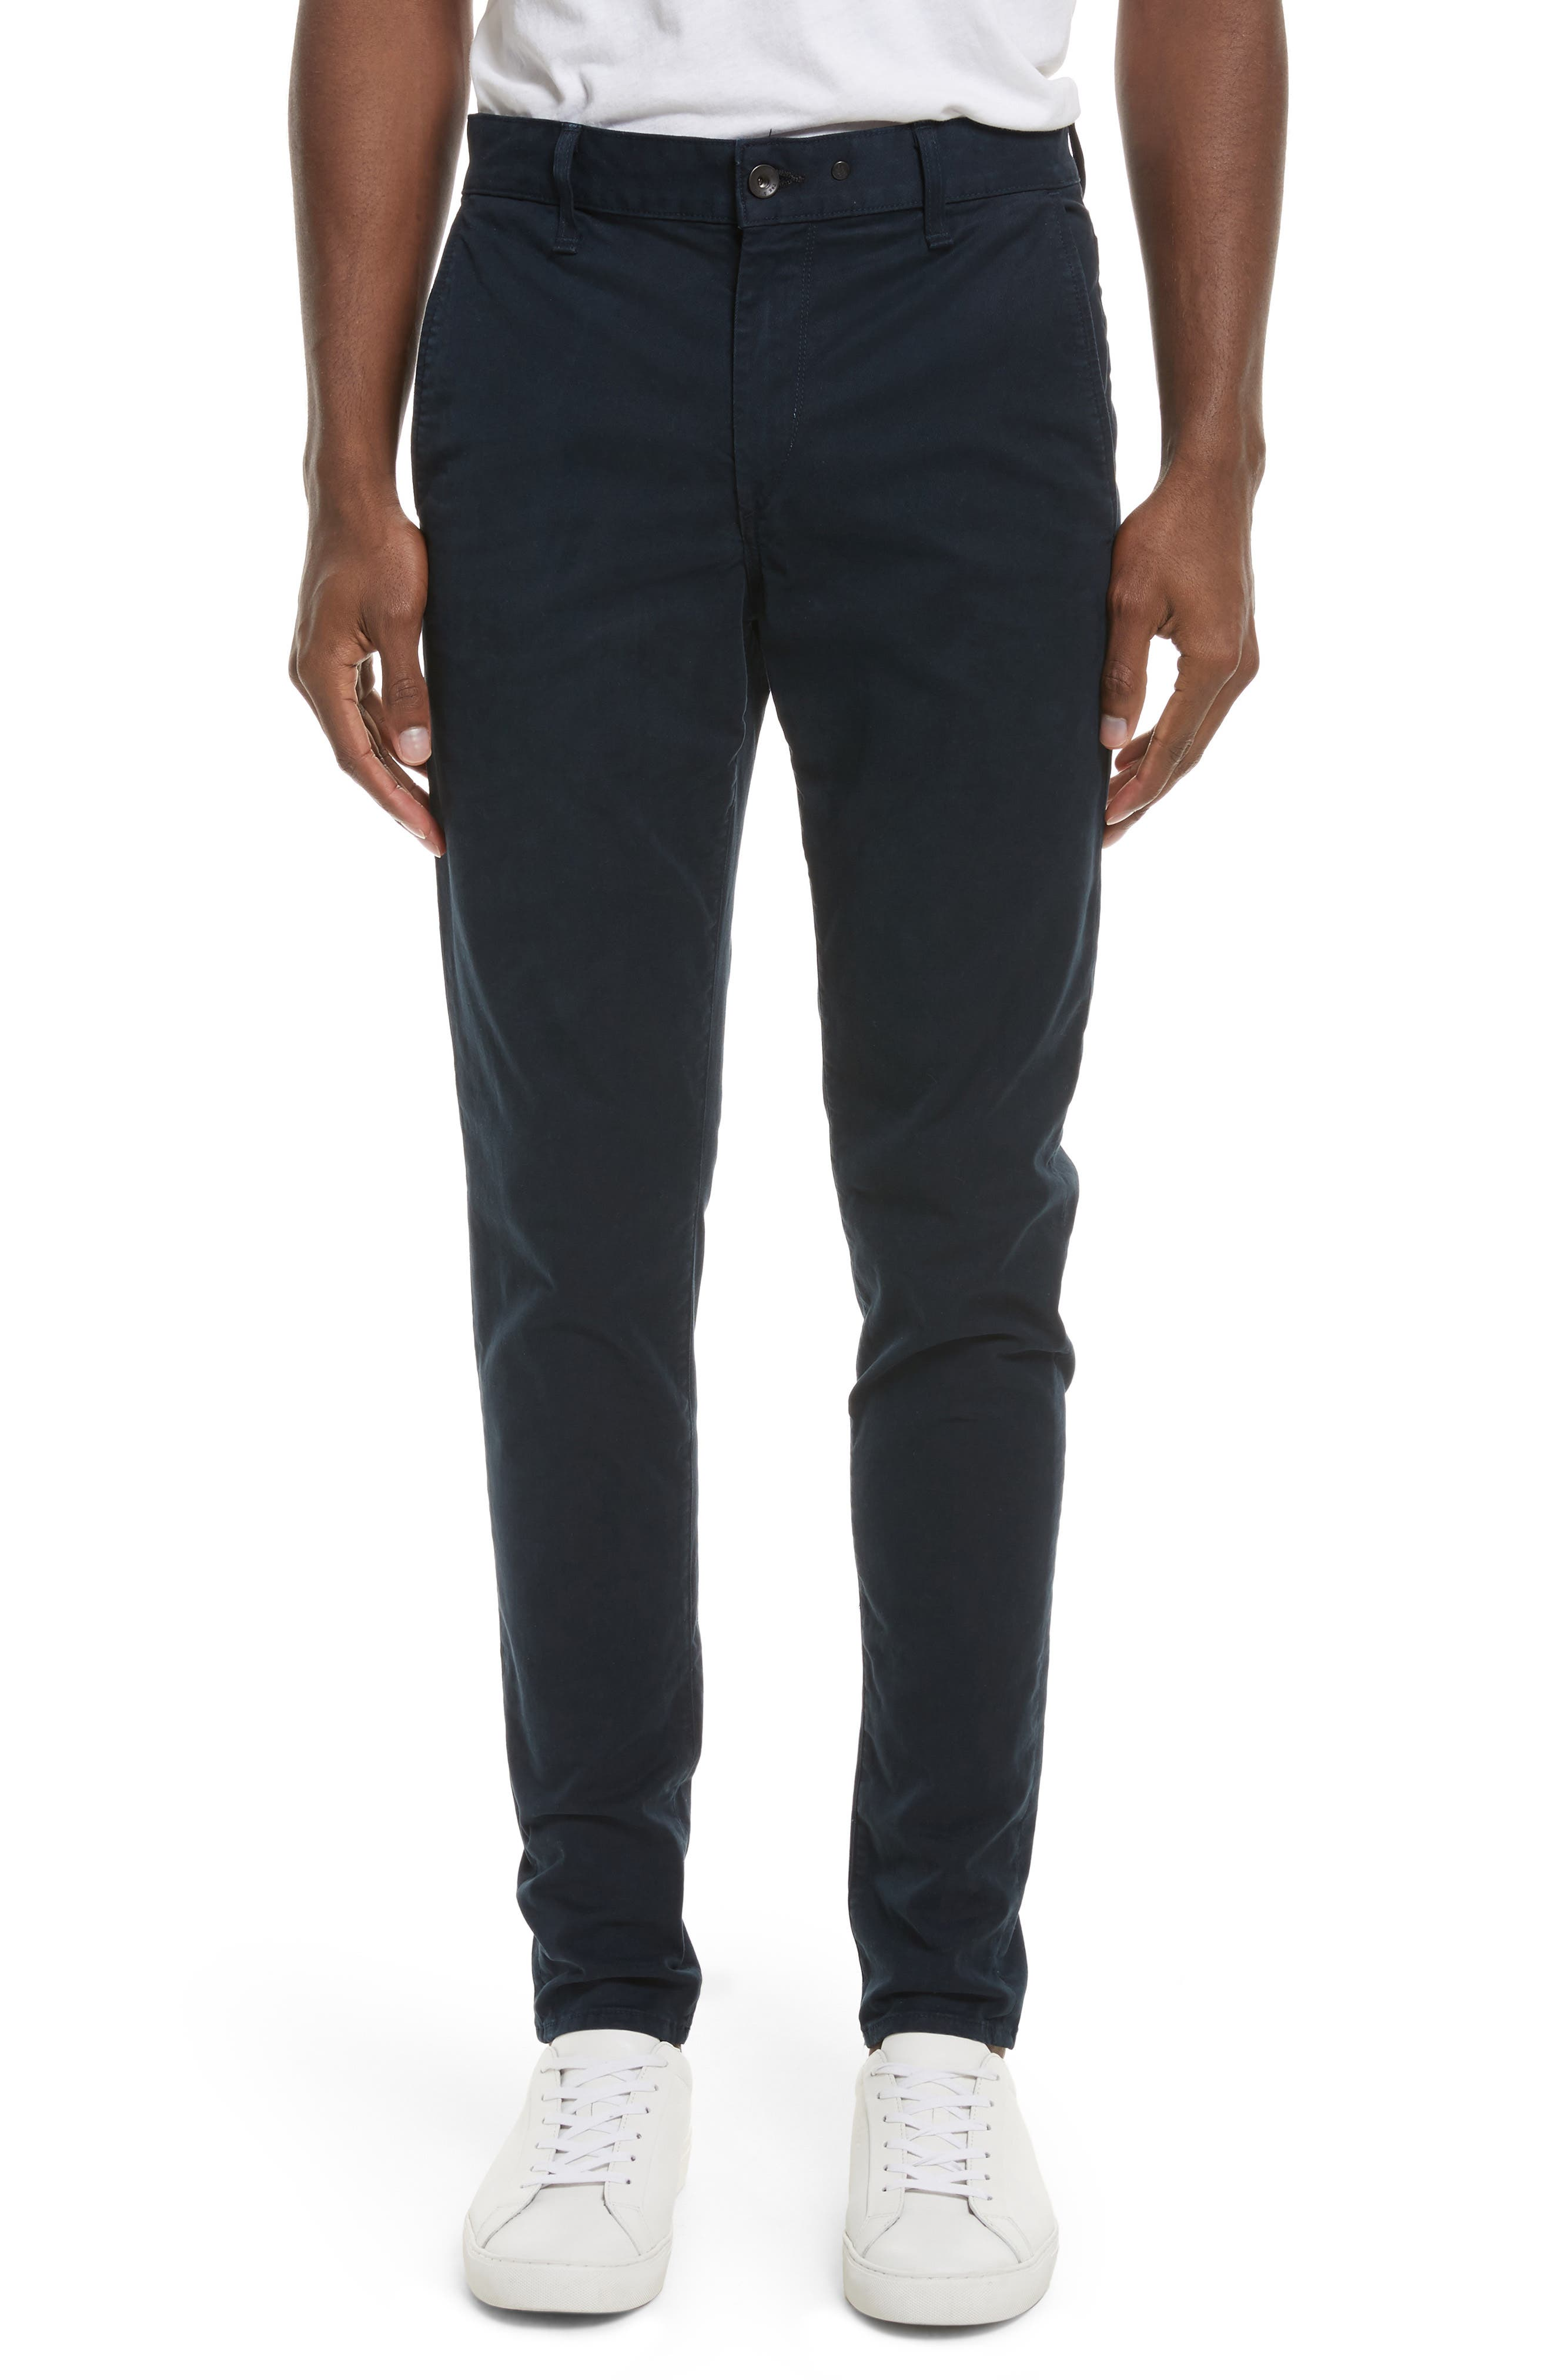 Fit 1 Chinos,                         Main,                         color, NAVY